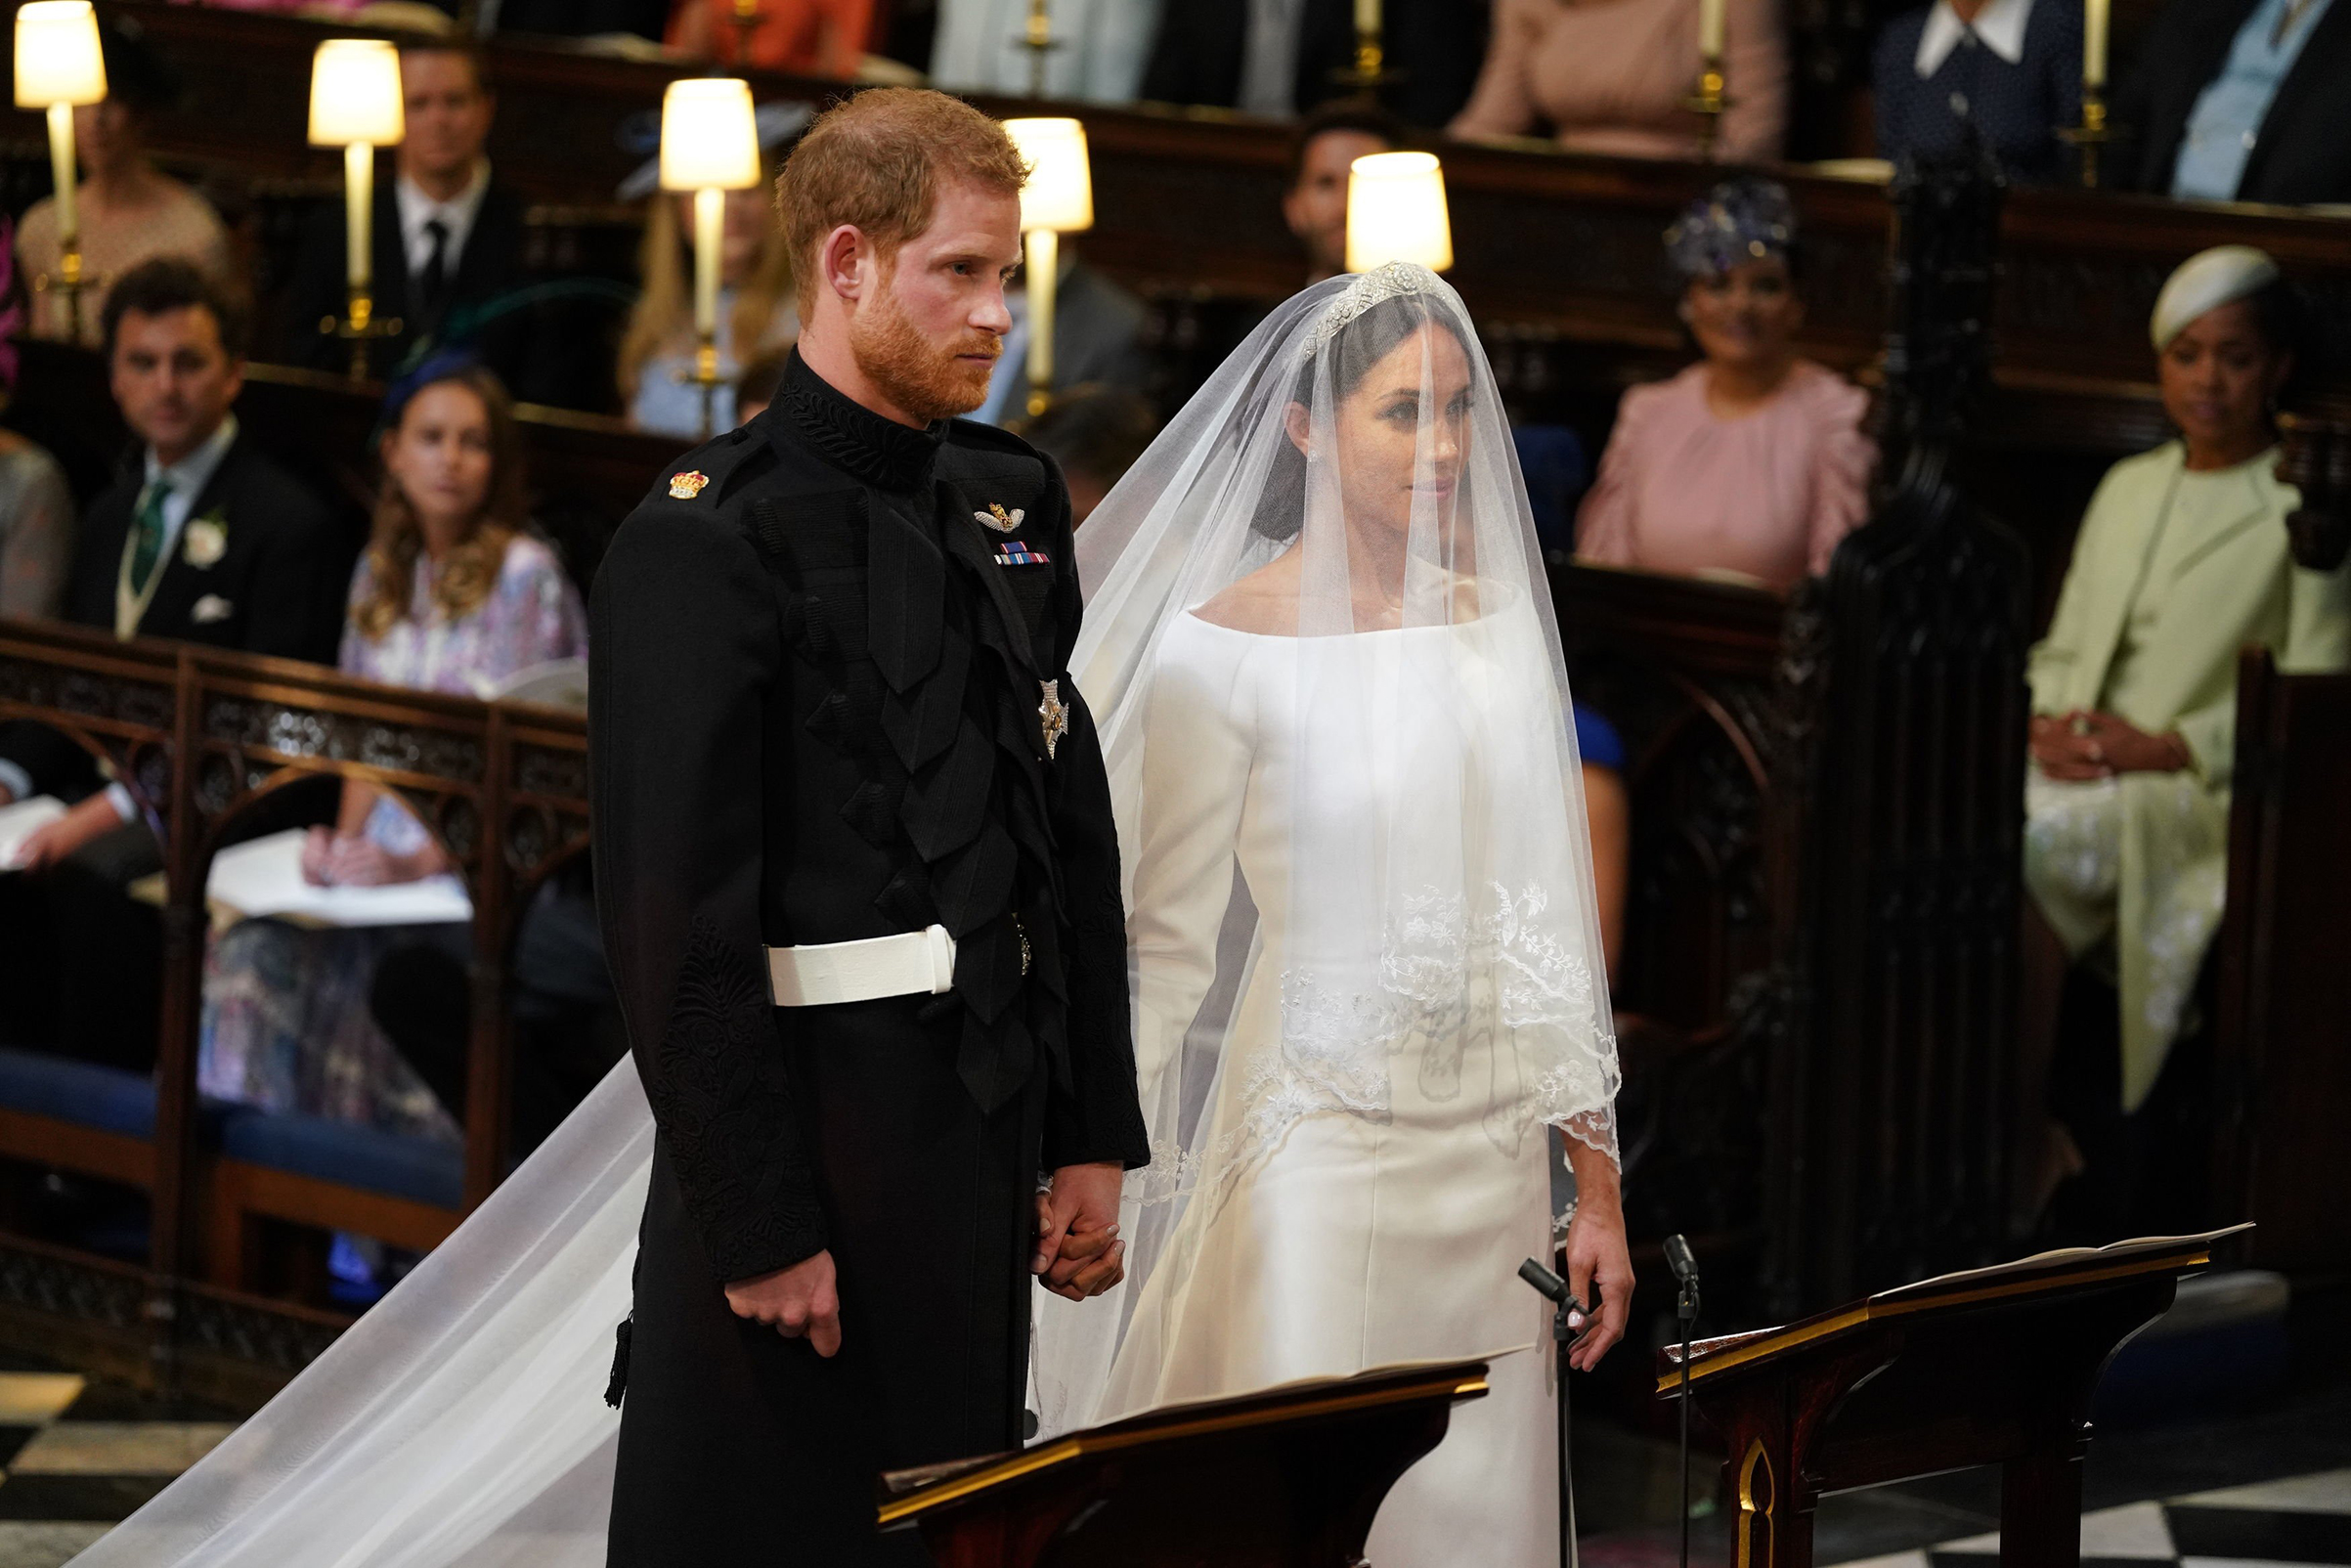 Prince Harry and Meghan Markle in St George's Chapel at Windsor Castle for their wedding, May 19, 2018.